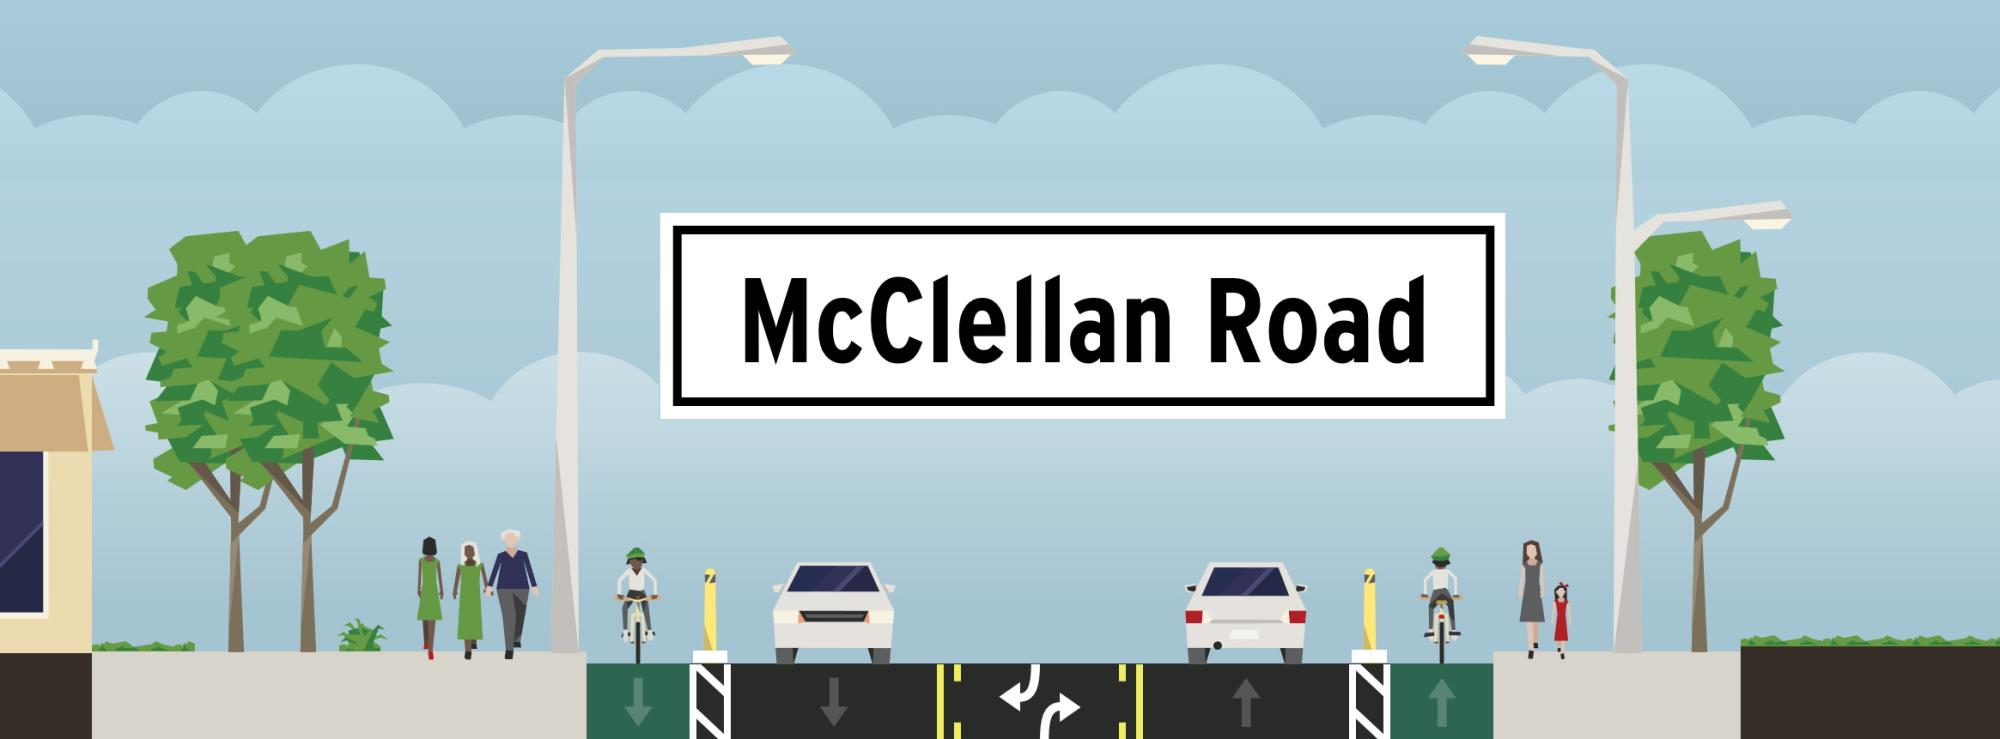 McClellan Road Separated Bike Lanes Project   City of ... on